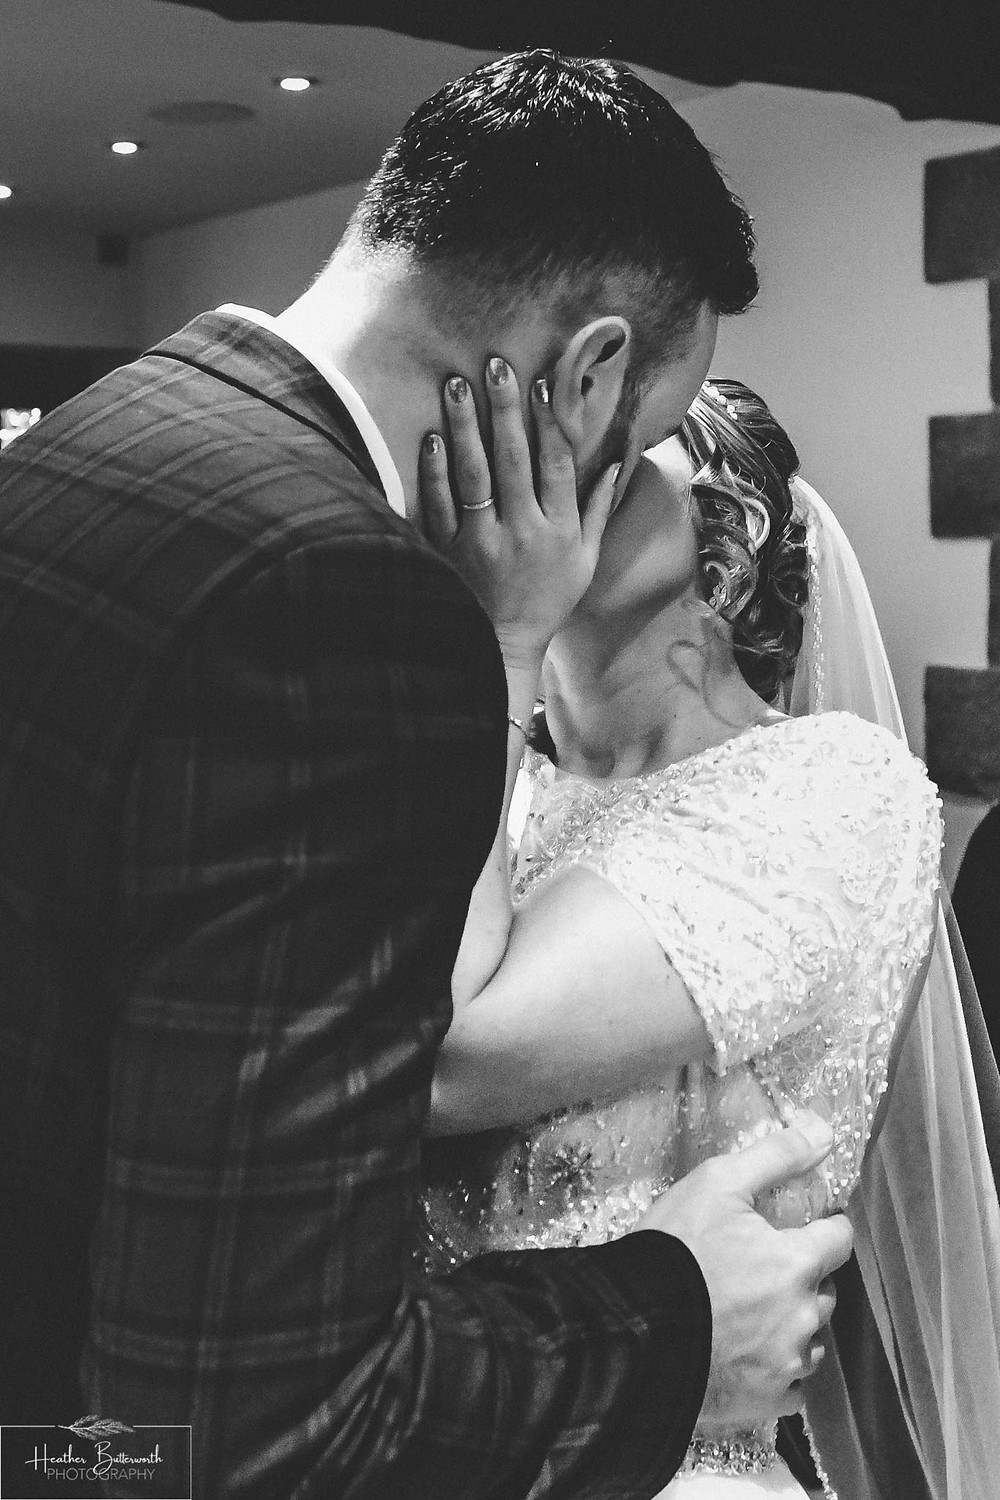 Bride and Groom kissing during their wedding ceremony at The Woodman Inn in Thunderbridge, Yorkshire